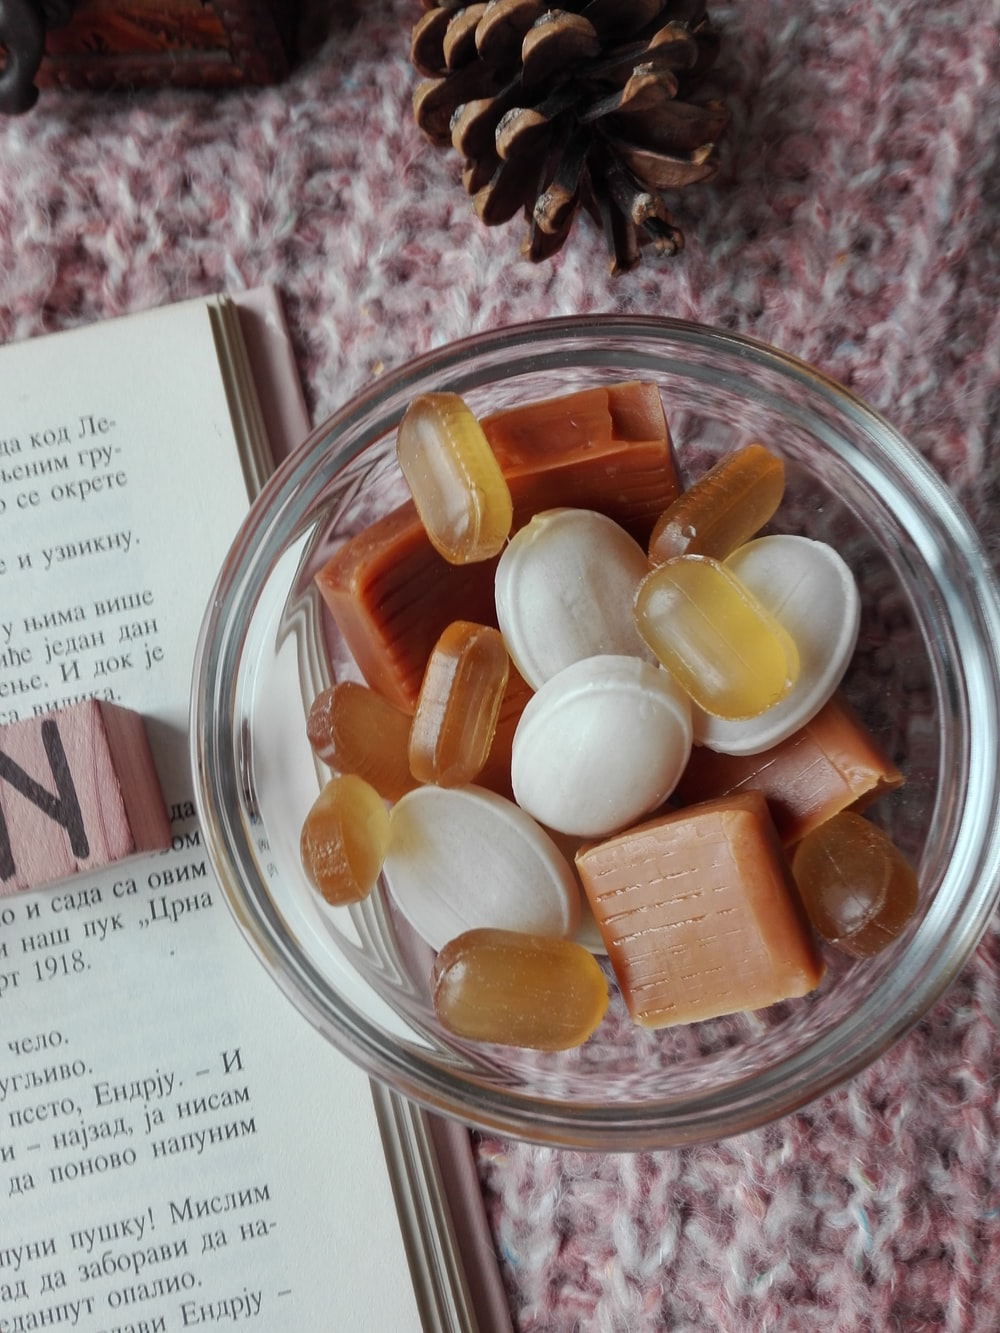 assorted candies in clear glass bowl beside book